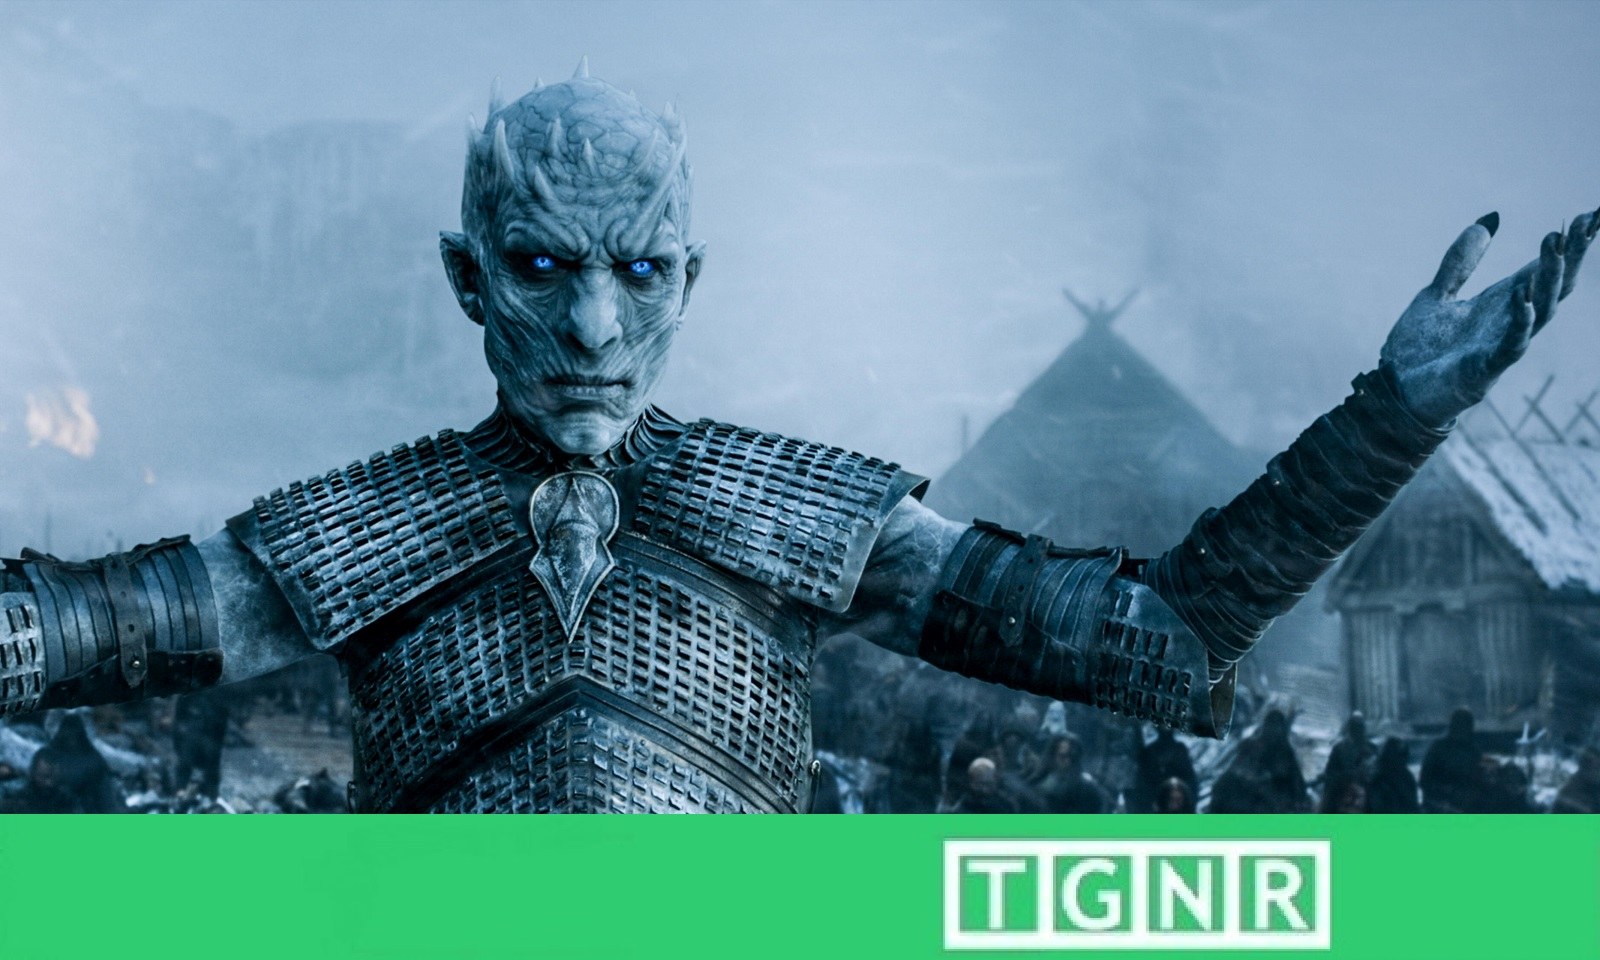 The Night King Game of Thrones Season 8 Predictions